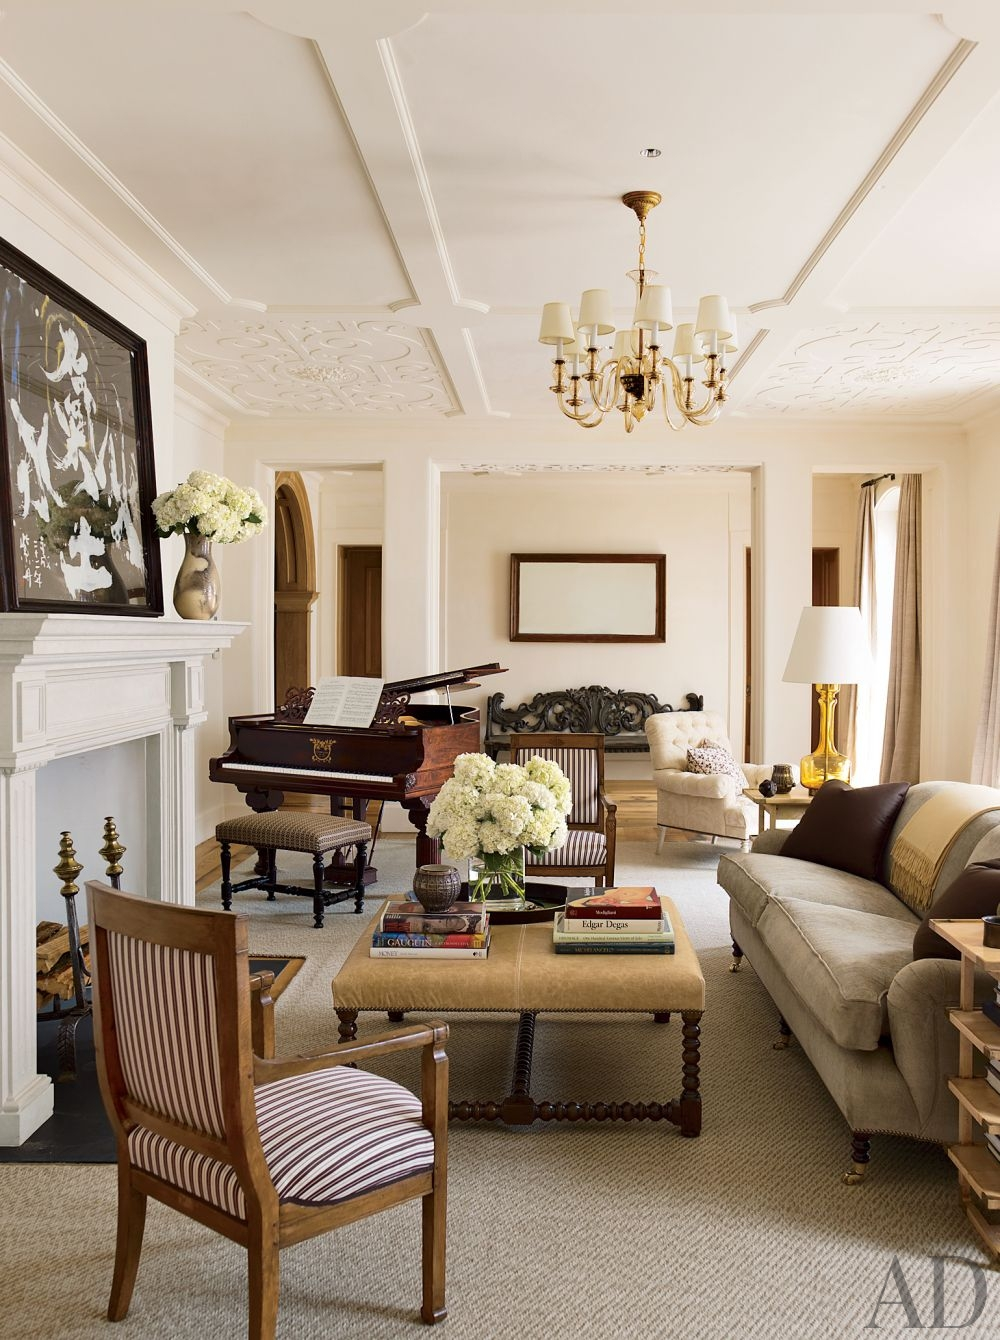 30 Great Traditional Living Room Design Ideas - Decoration ...